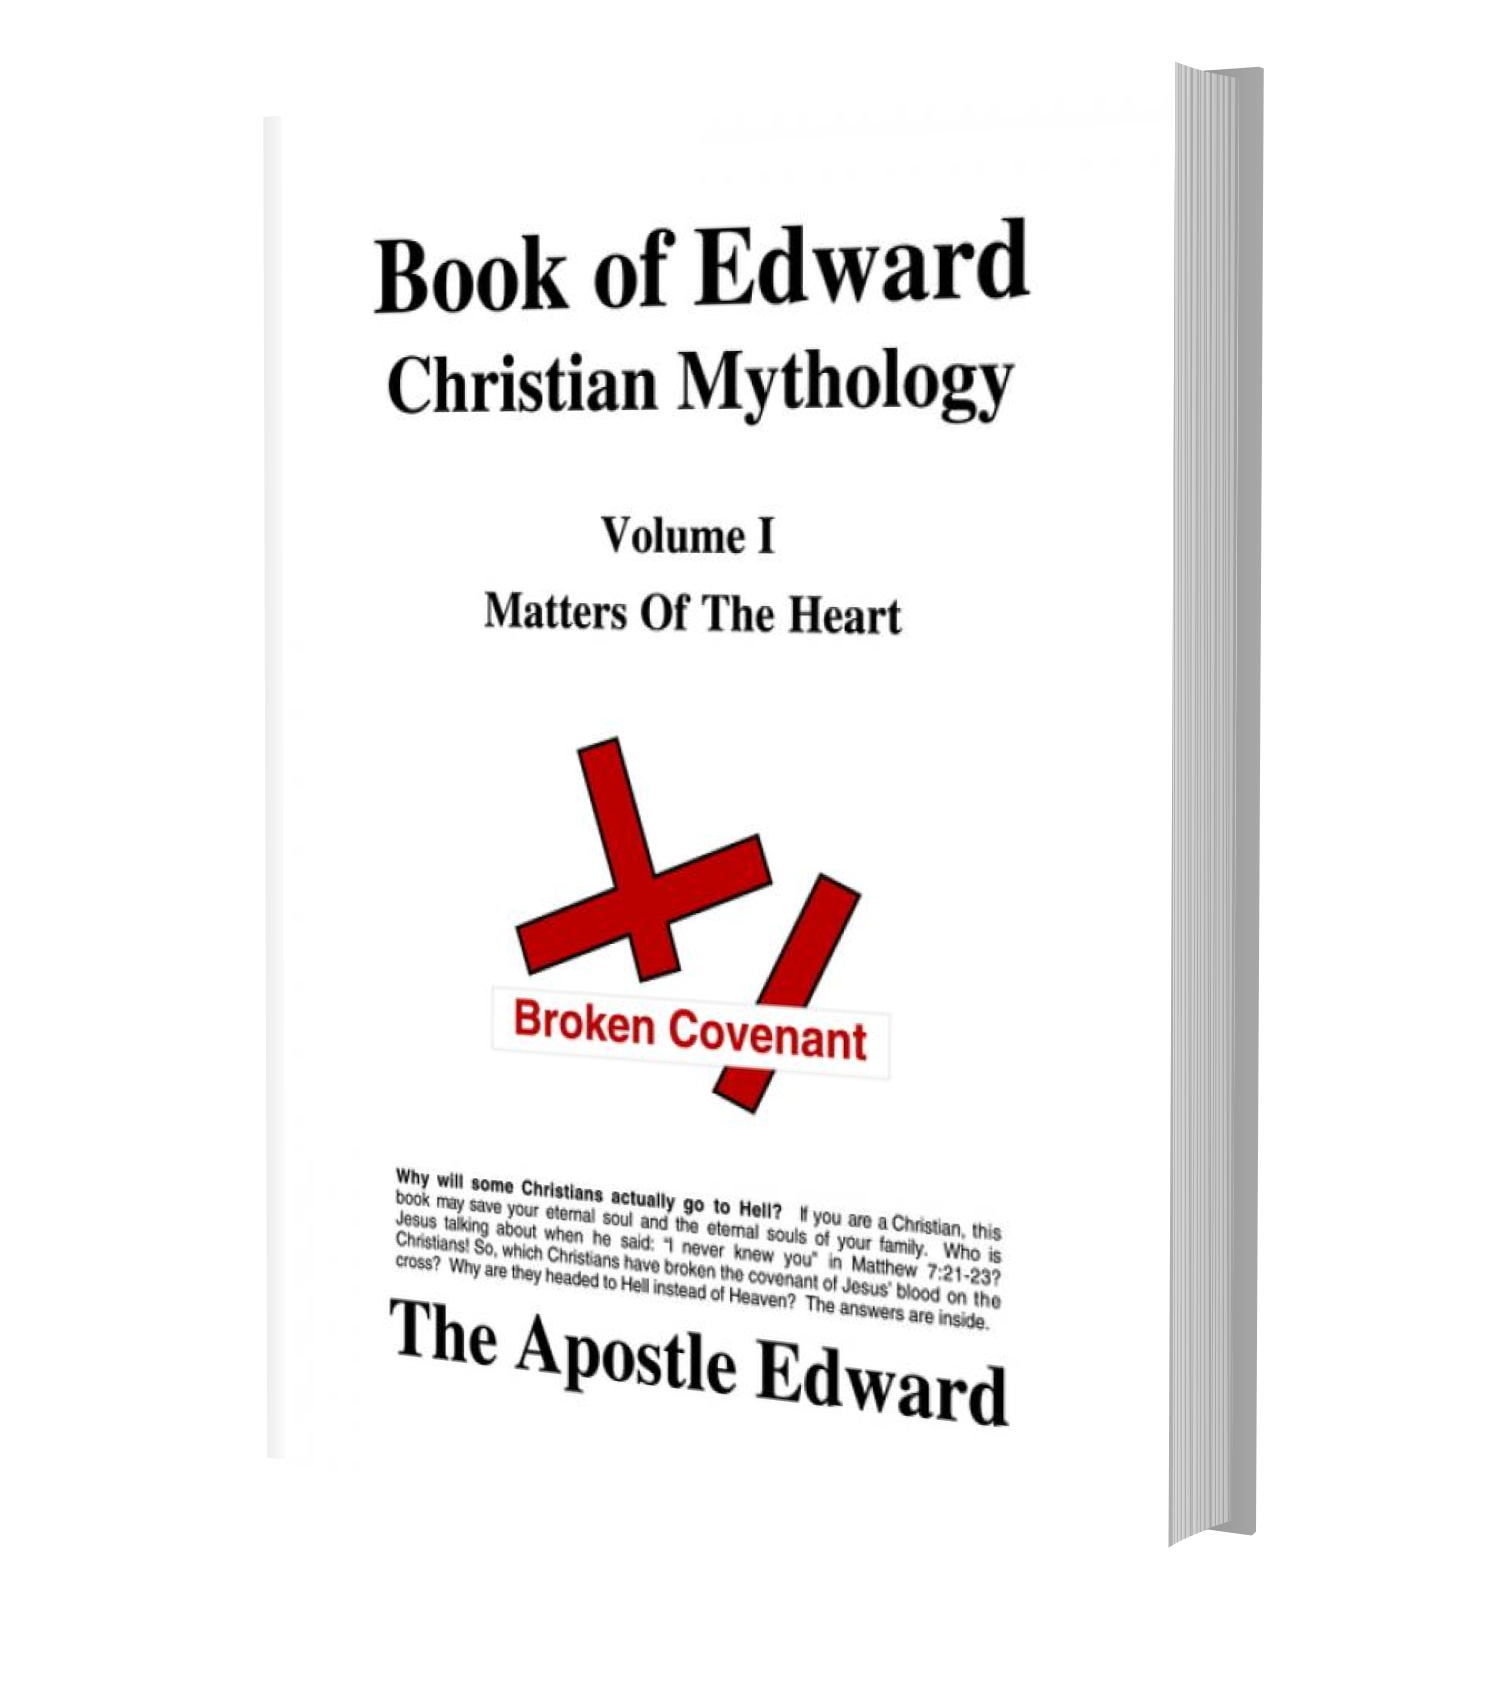 Image of Apostle Edward's Book of Edward Volume I